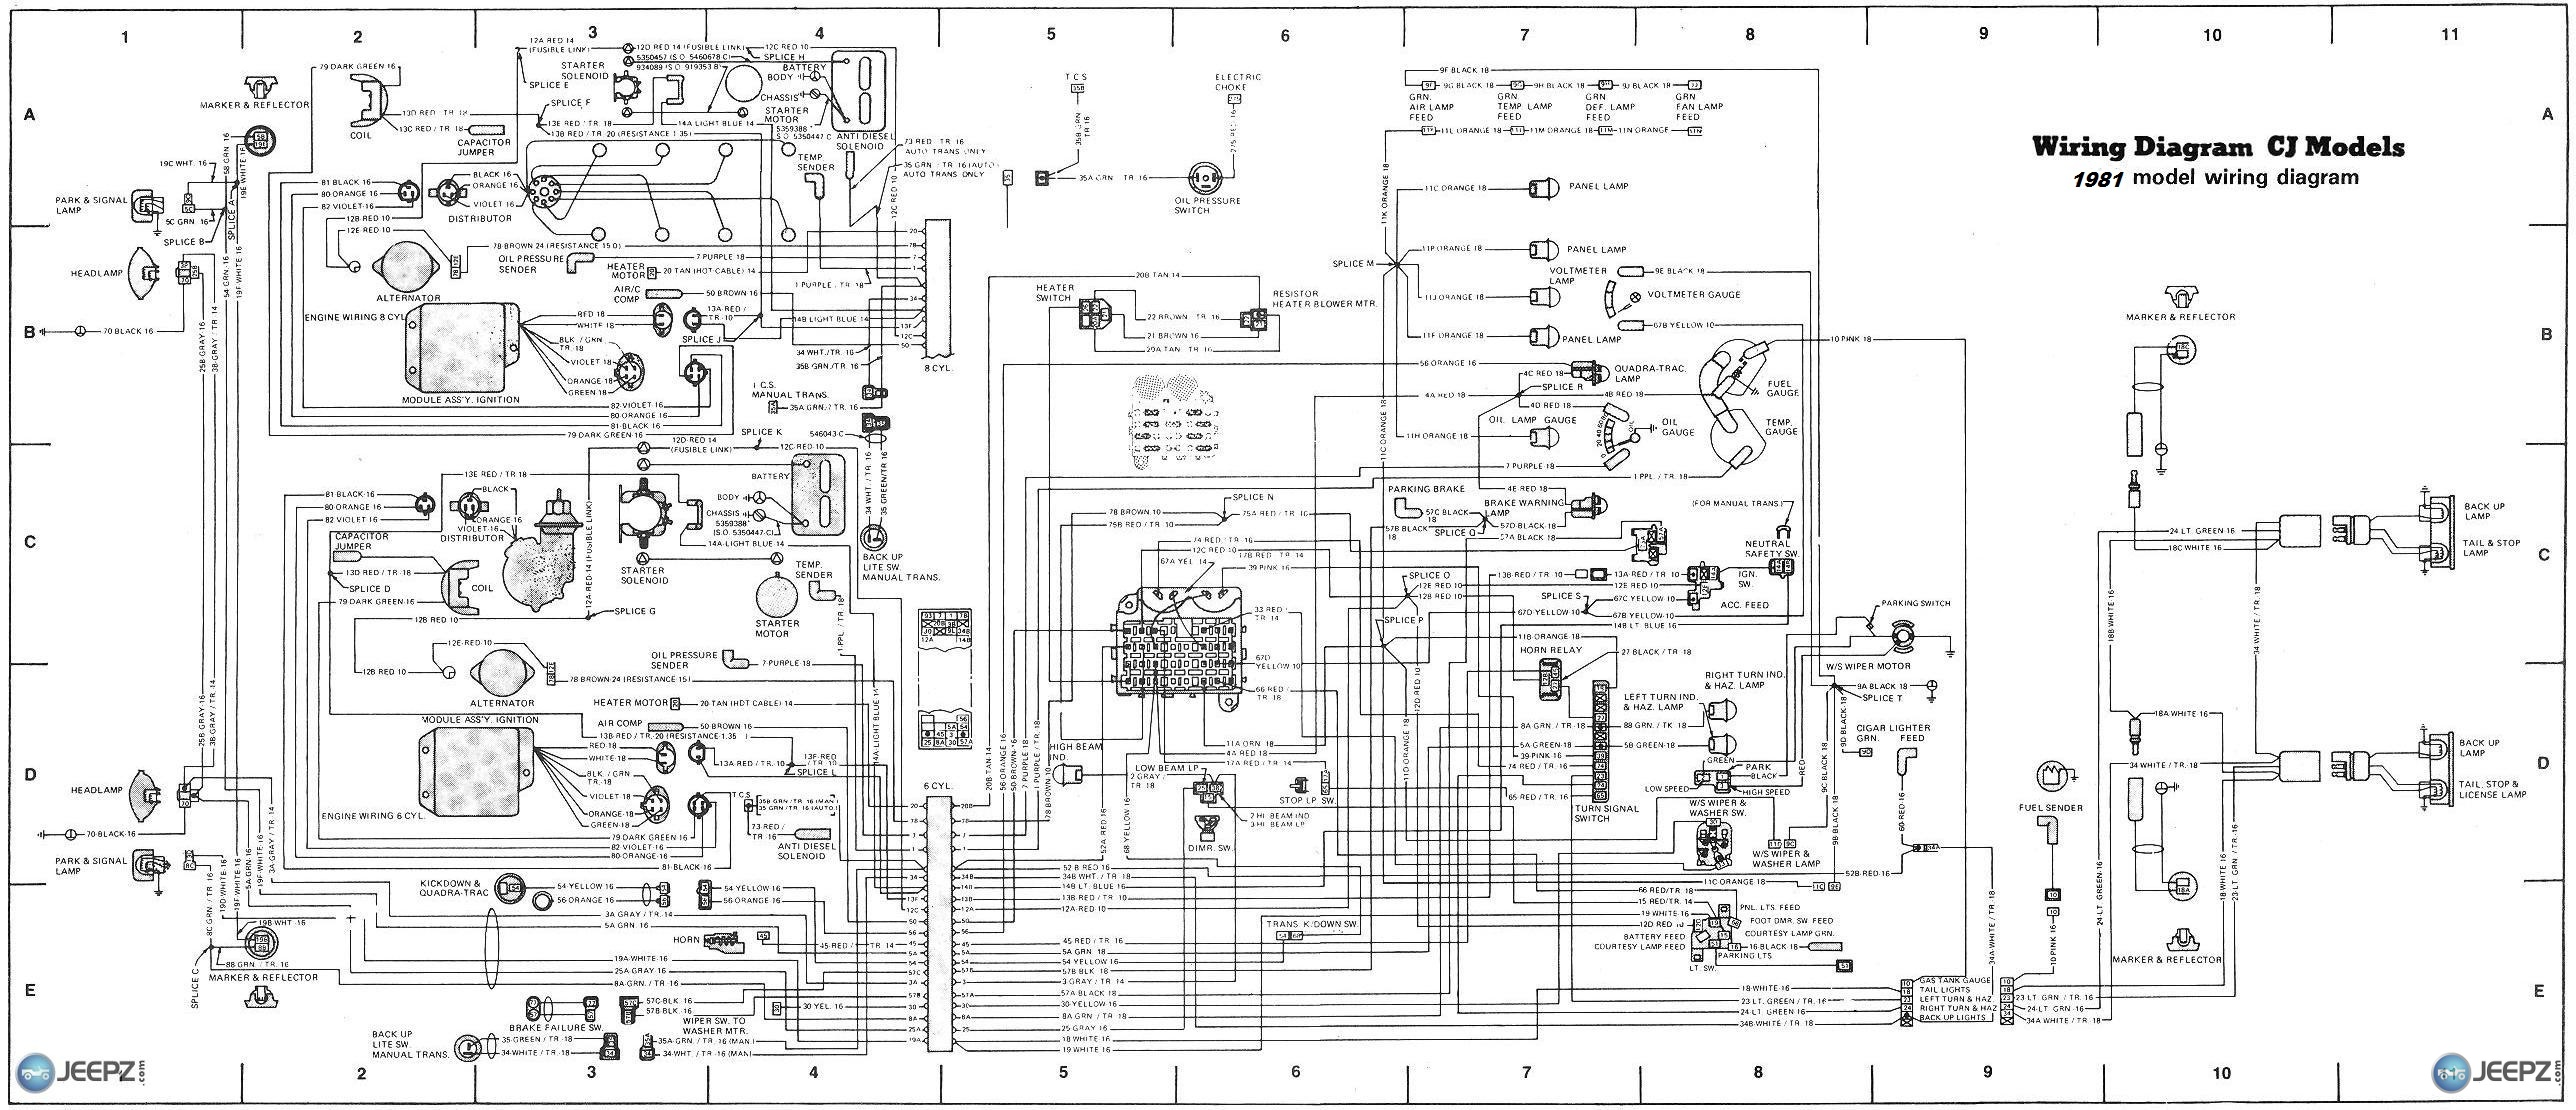 7993d1301845049 cj 7 wire diagram cj wiring diagram 1981 cj 7 wire diagram 7 wire diagram at bayanpartner.co